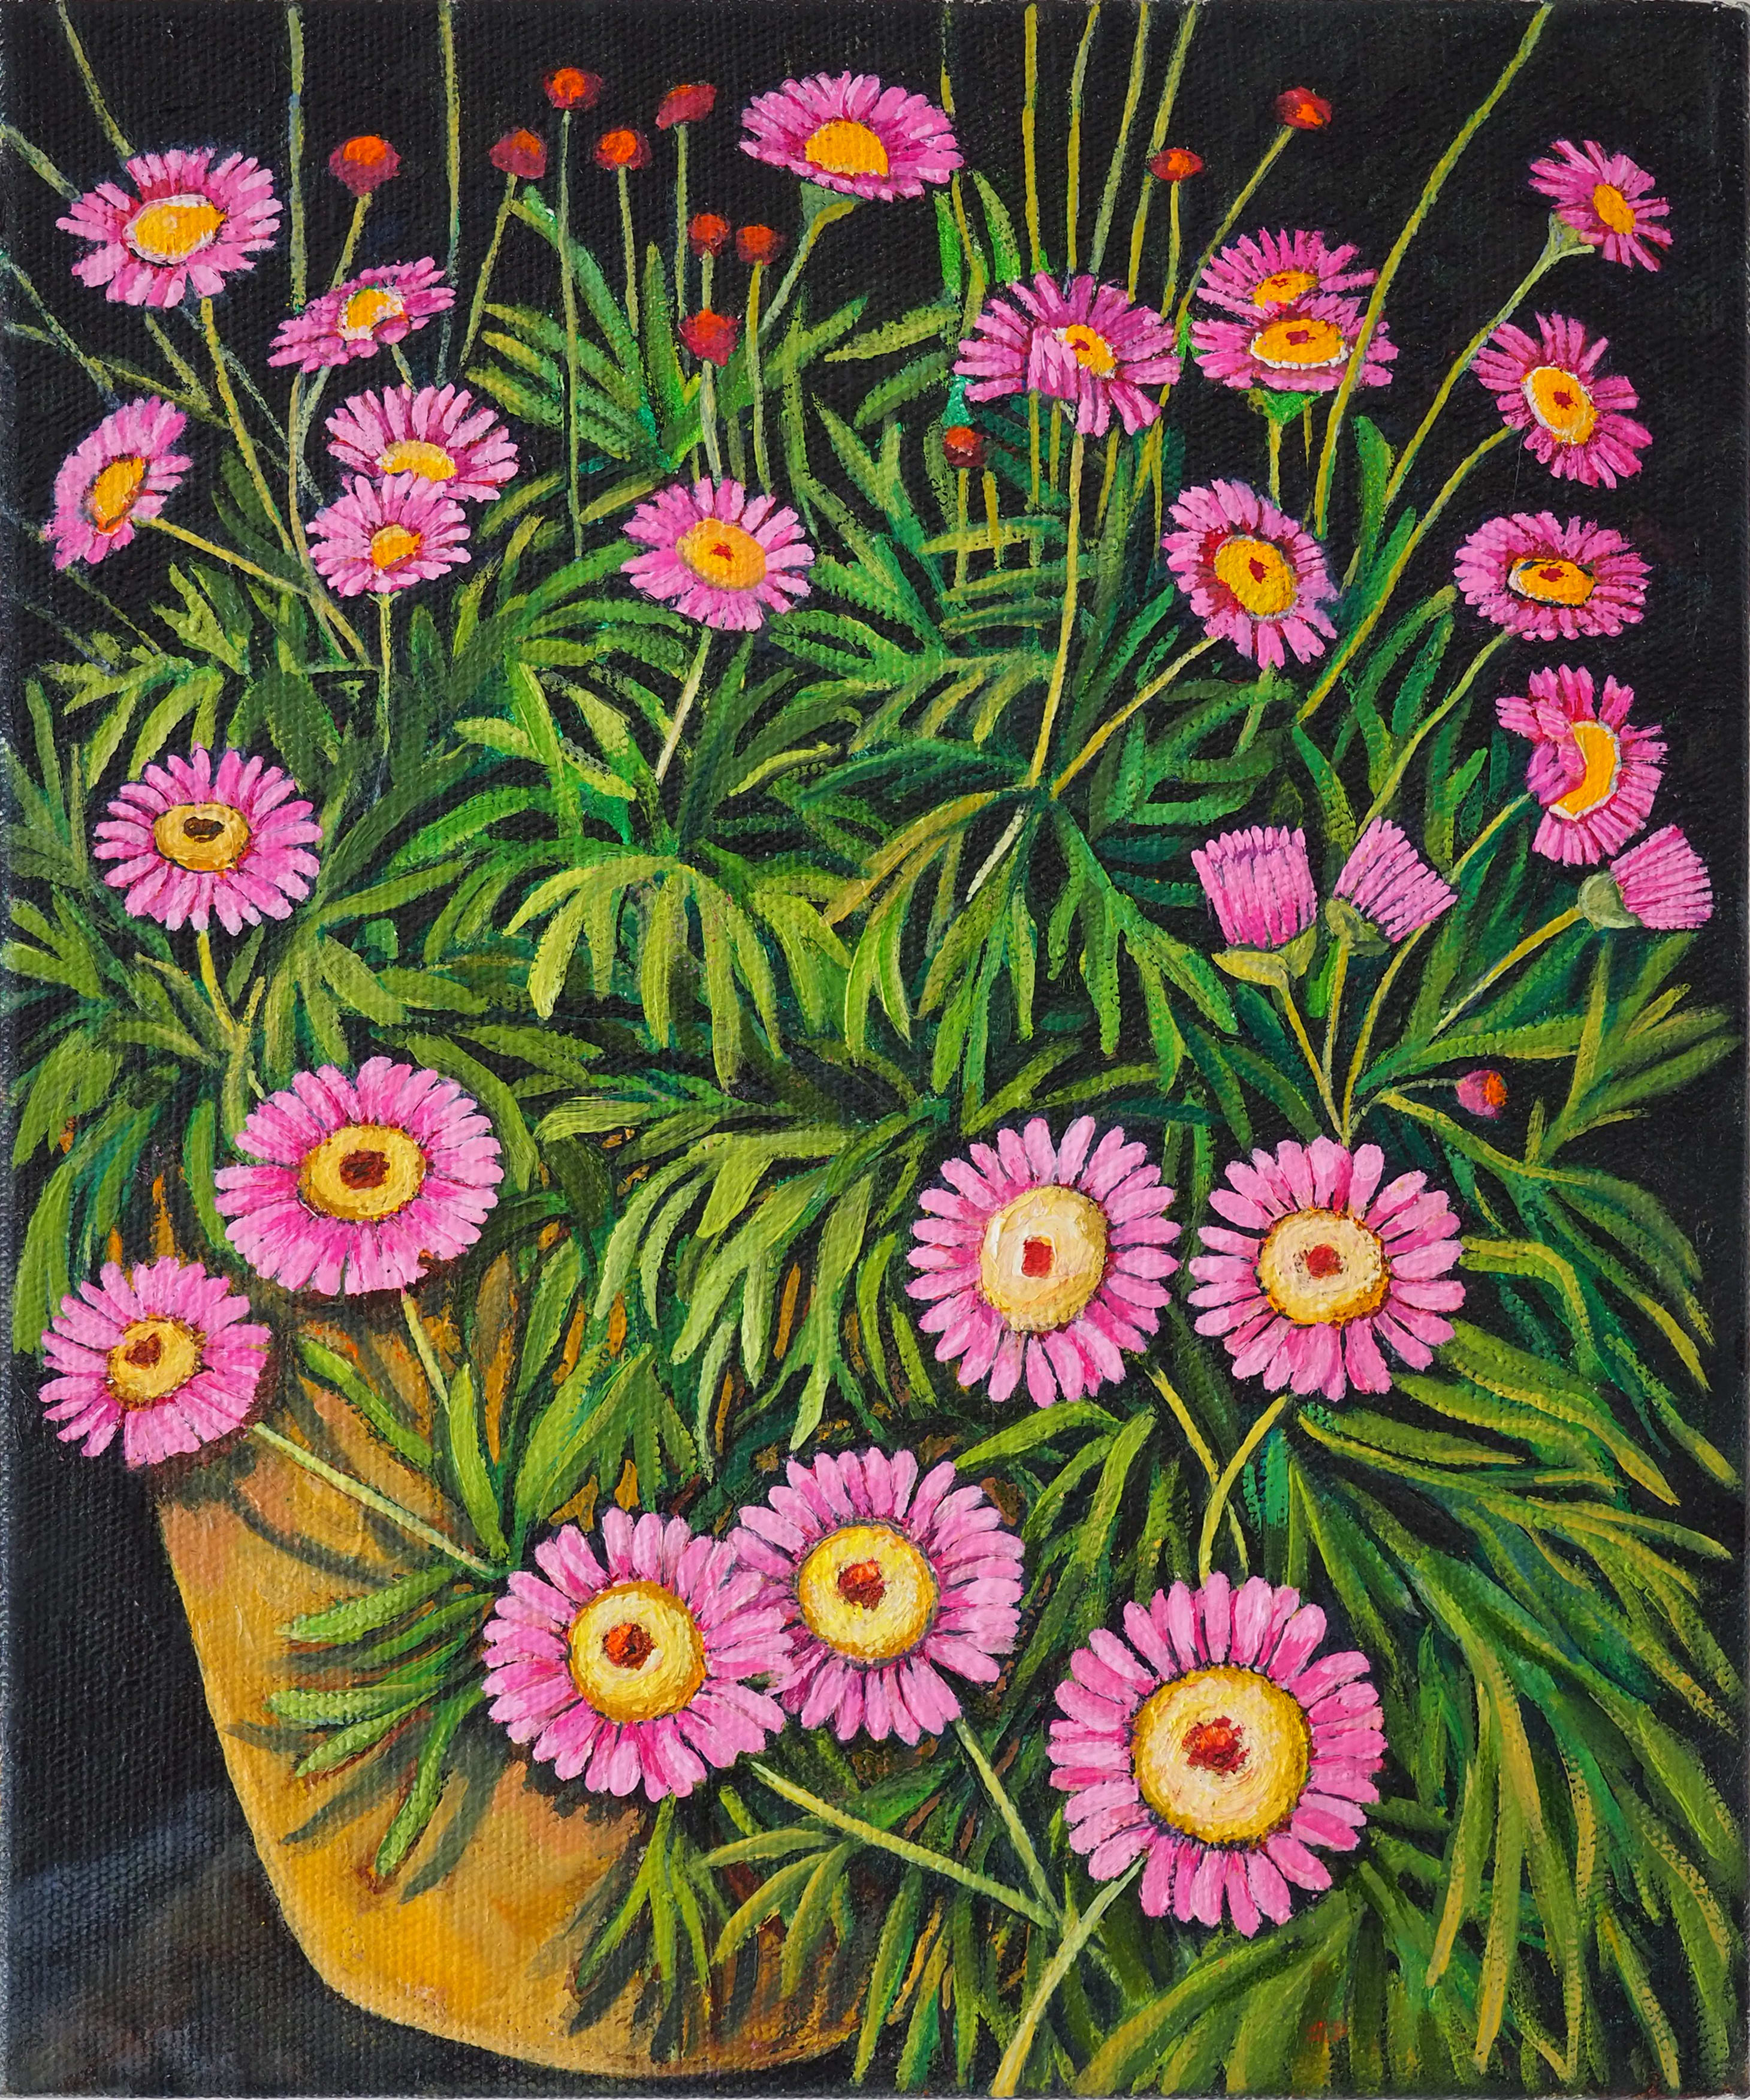 Potted Pink Daisies 35x30cm oil on canvas $400